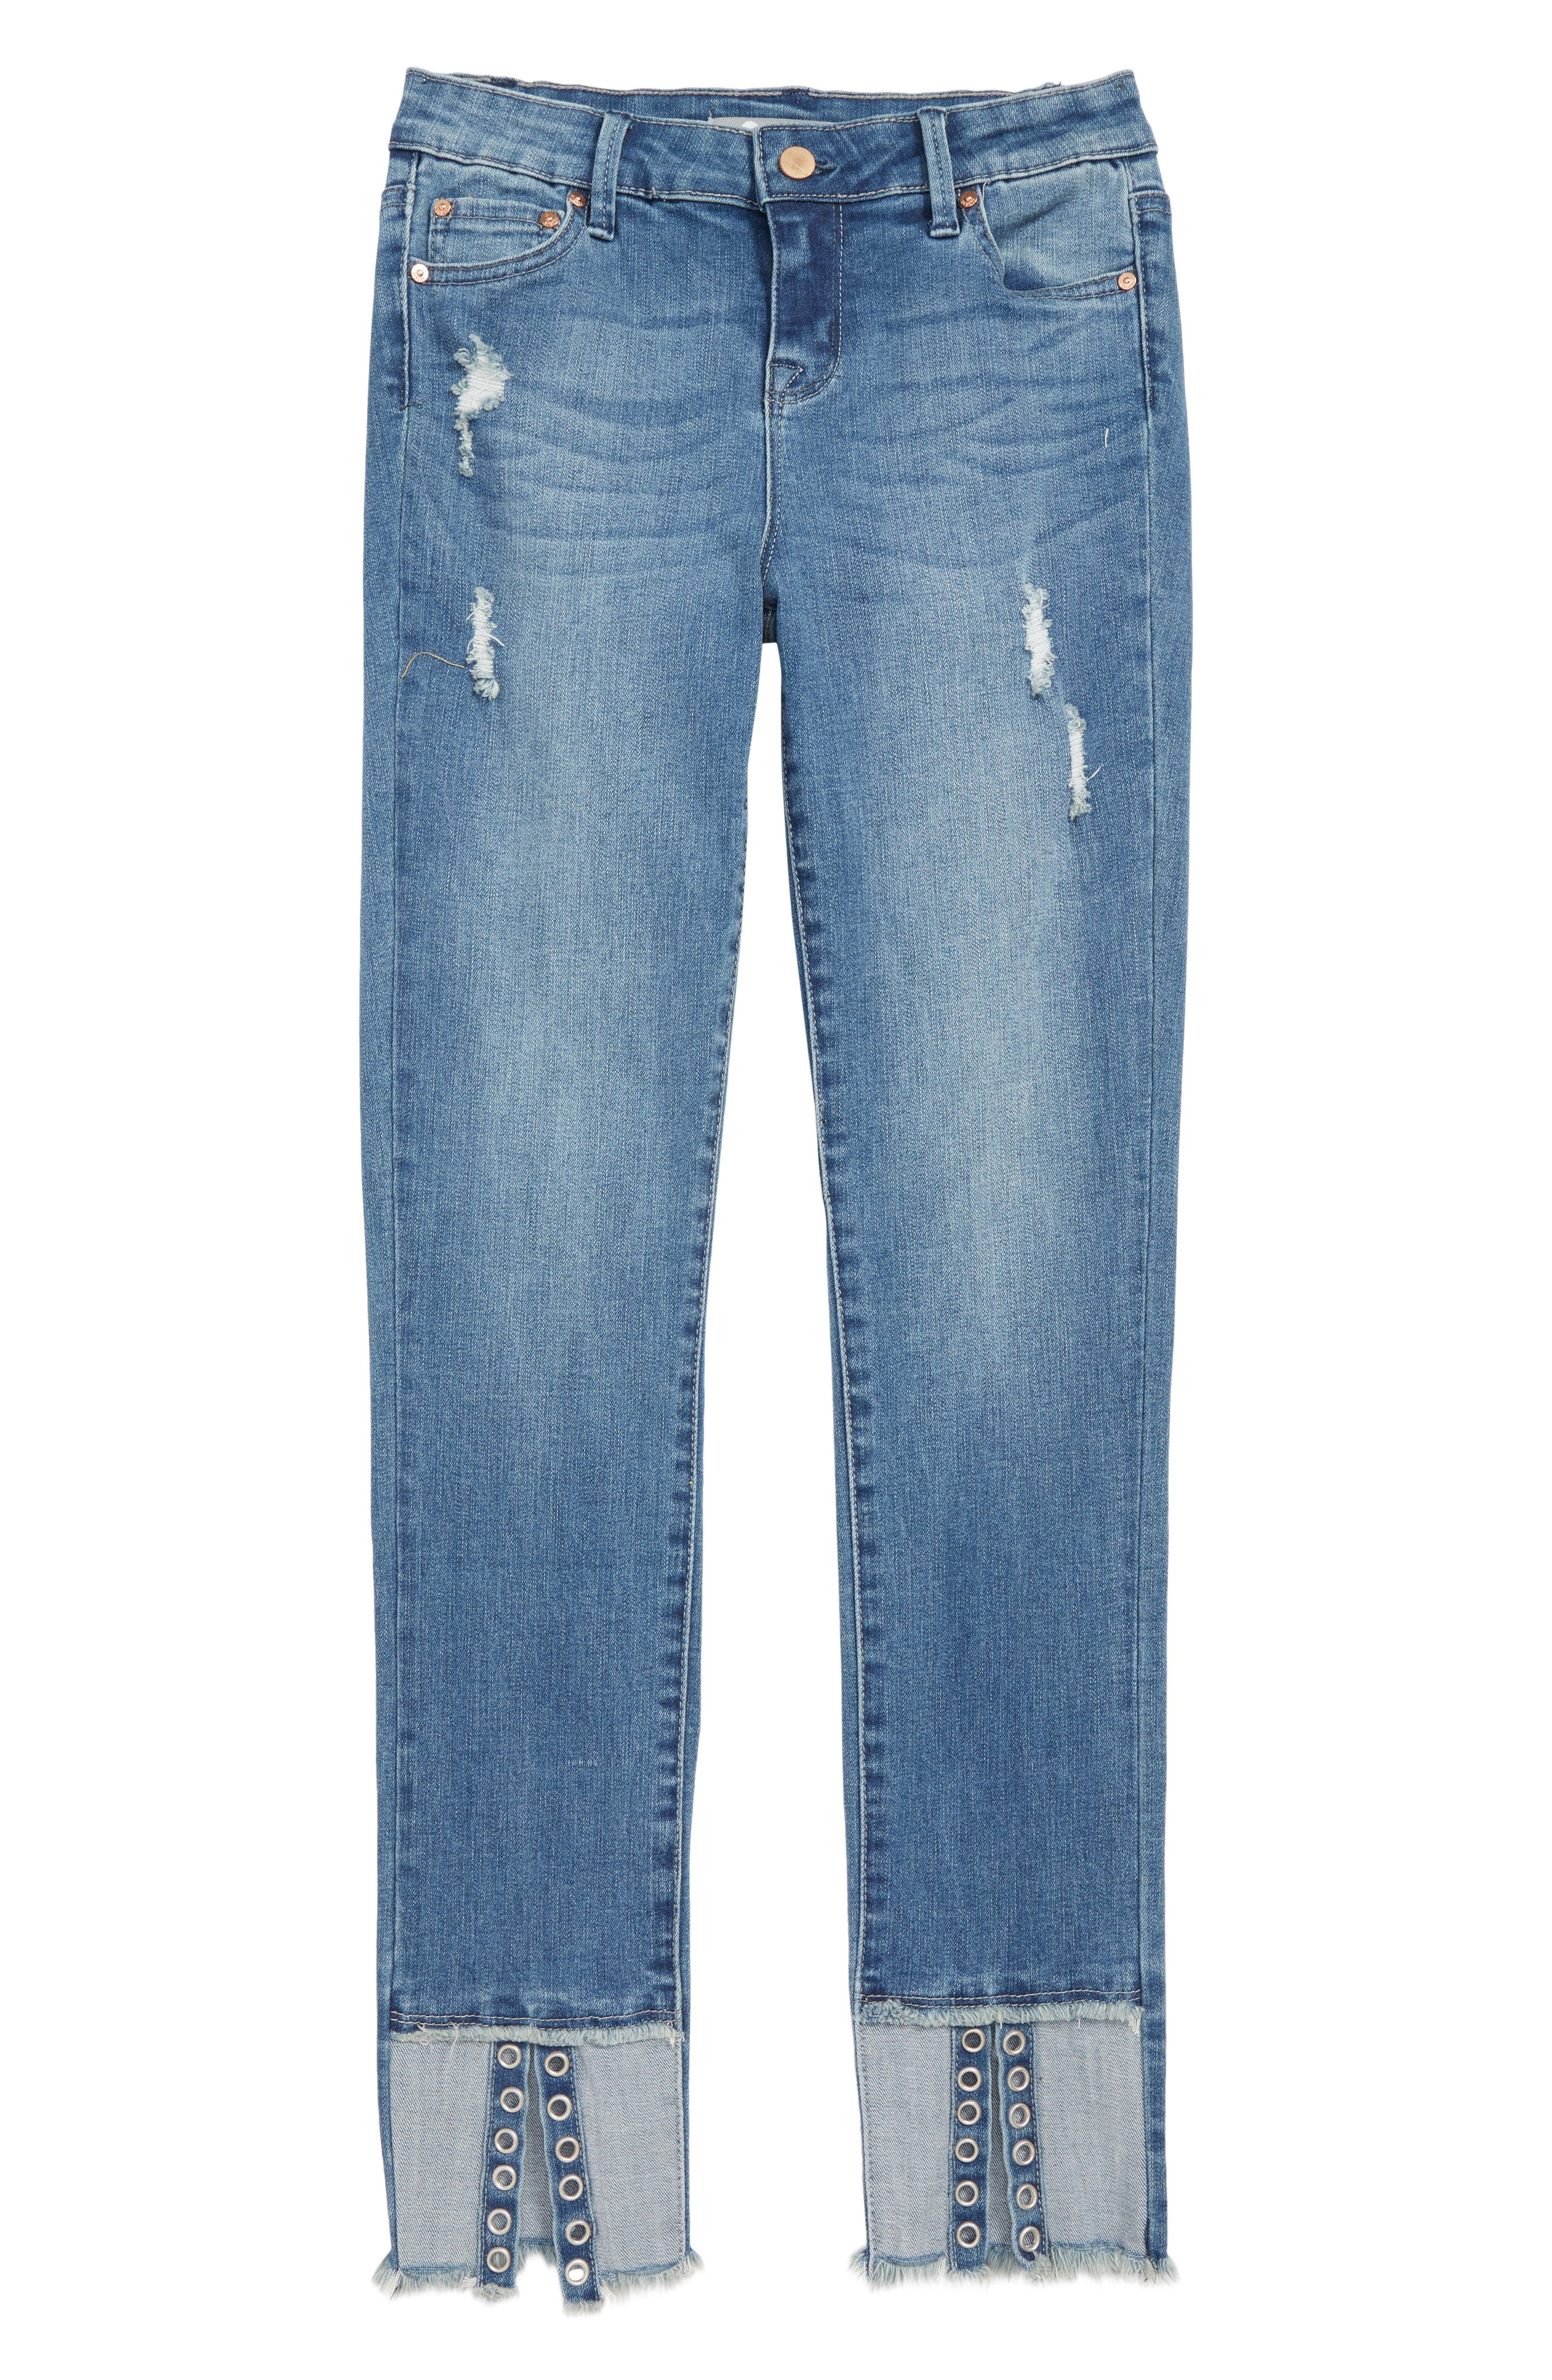 TRACTR Deconstructed Eyelet Hem Skinny Jeans, Main, color, 407